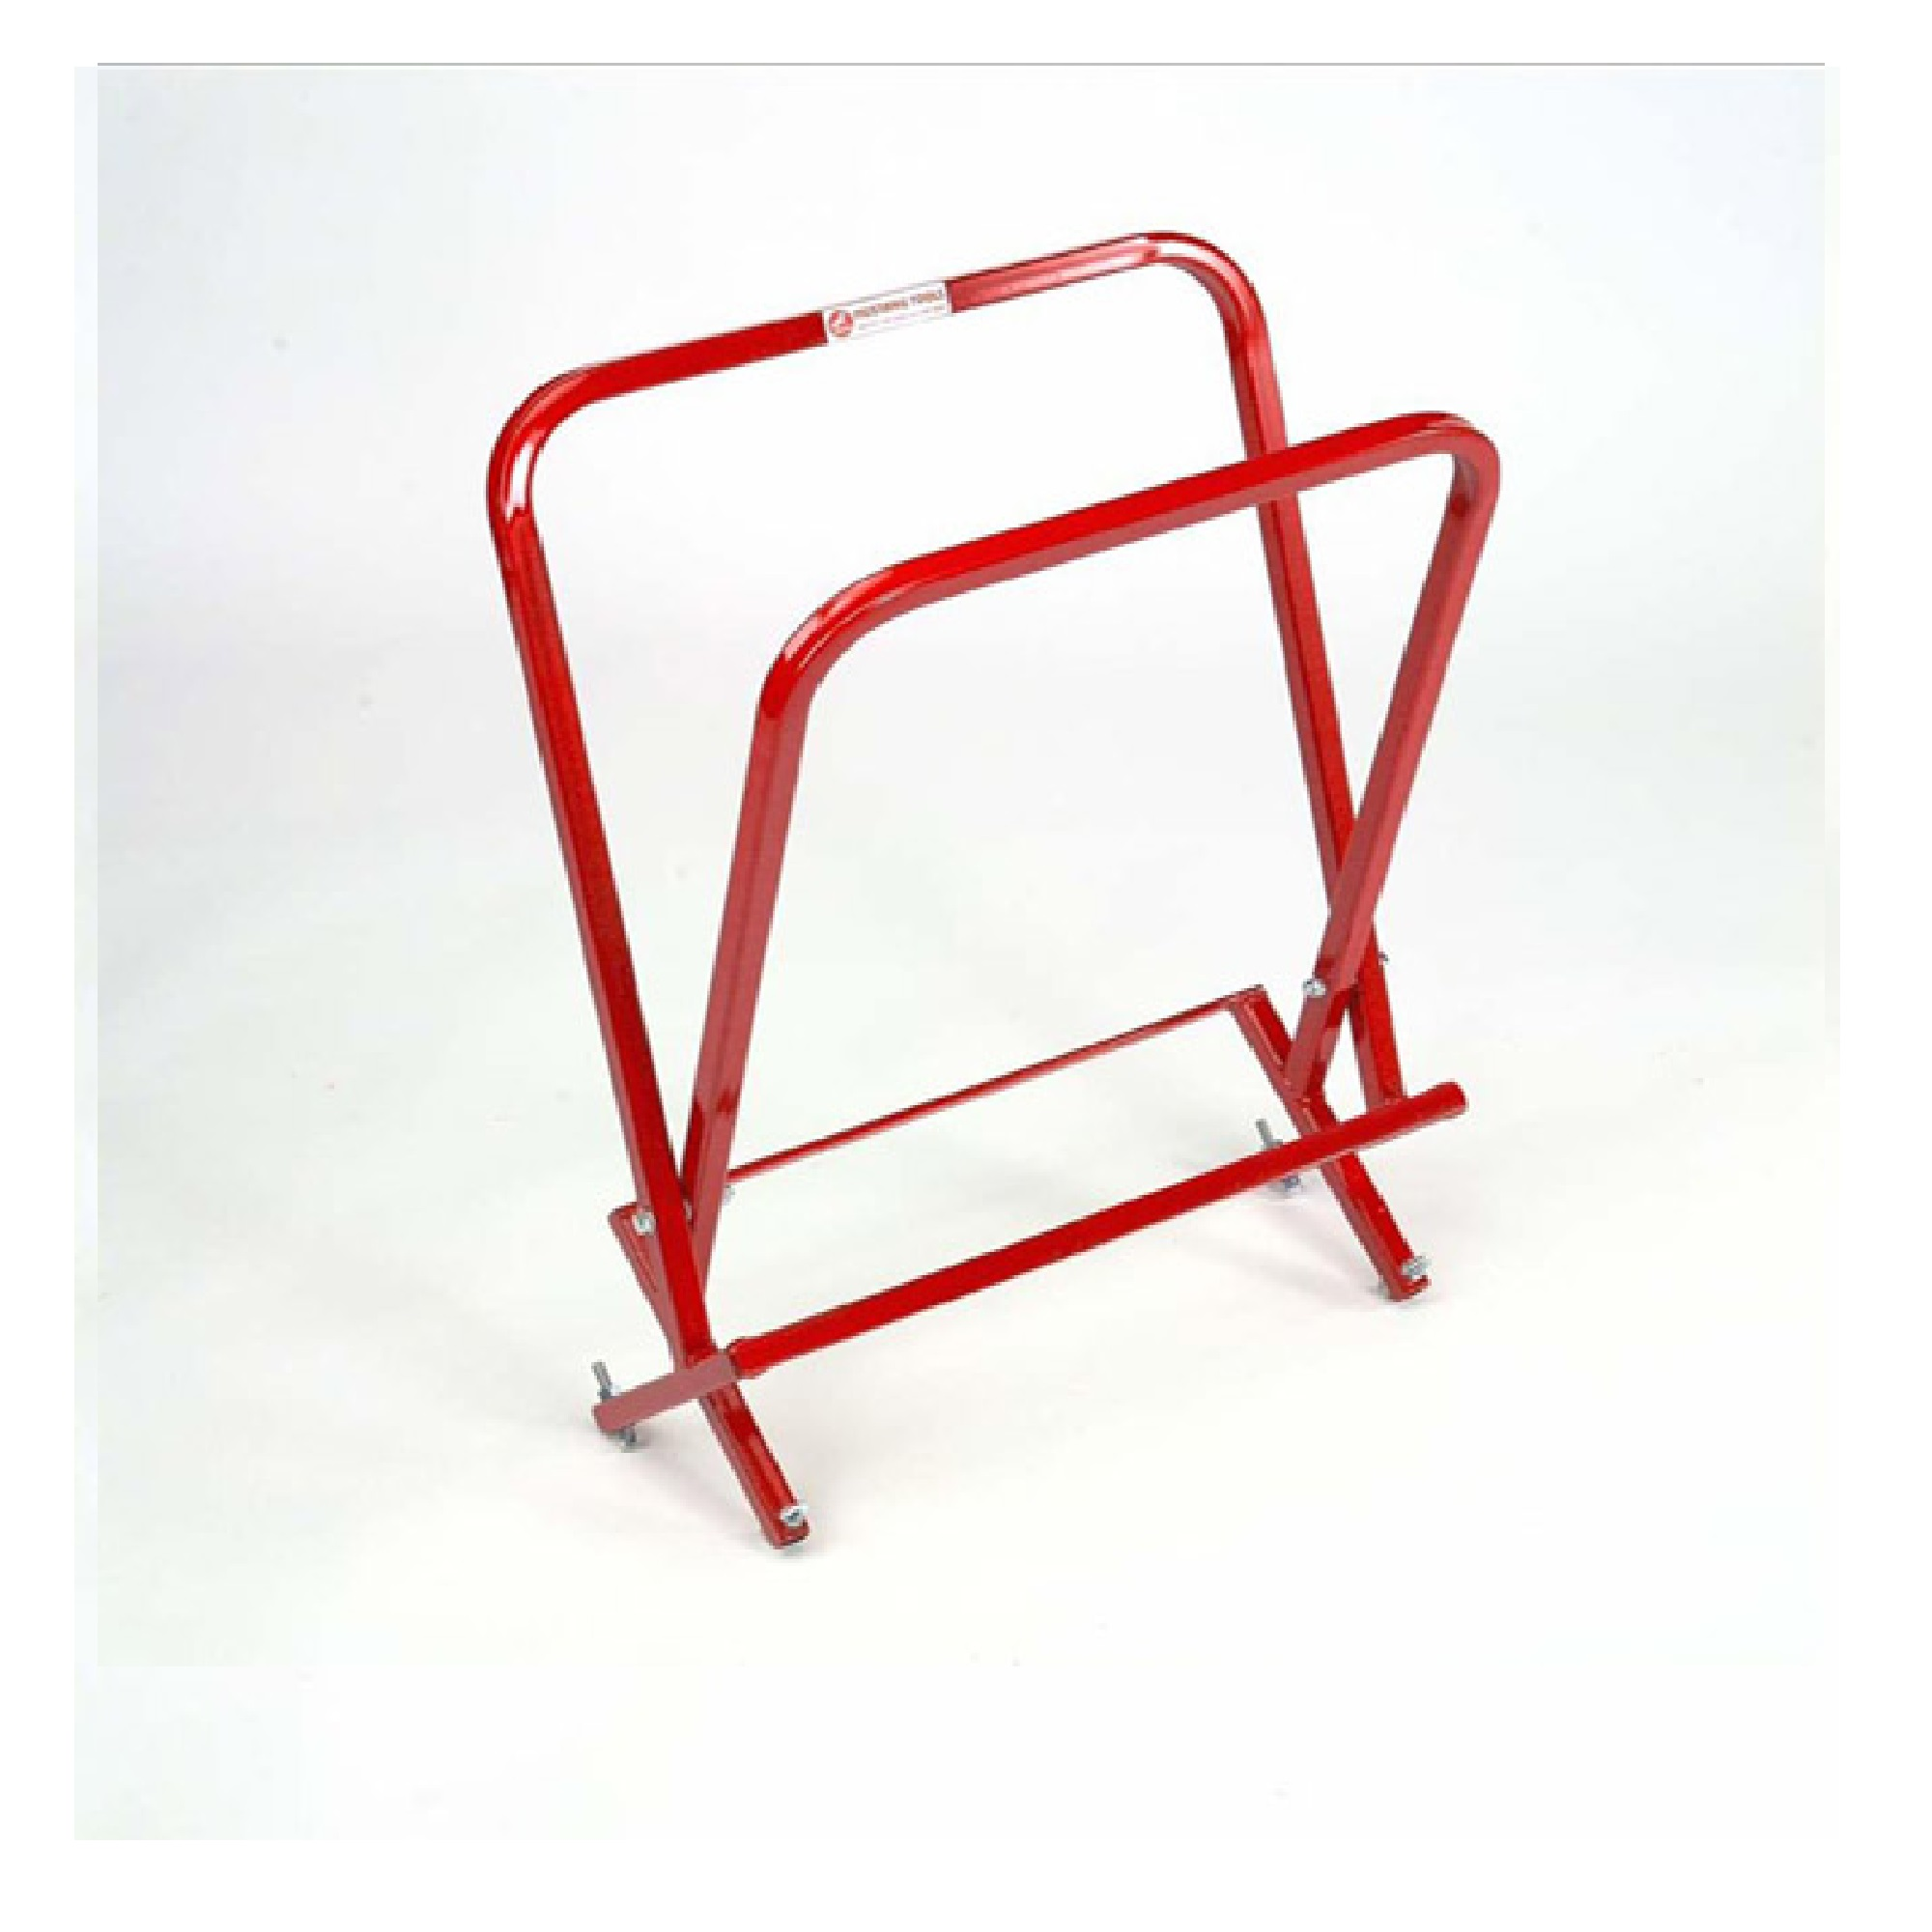 Red steel side gripping kerb lifter from Mustang on a white background